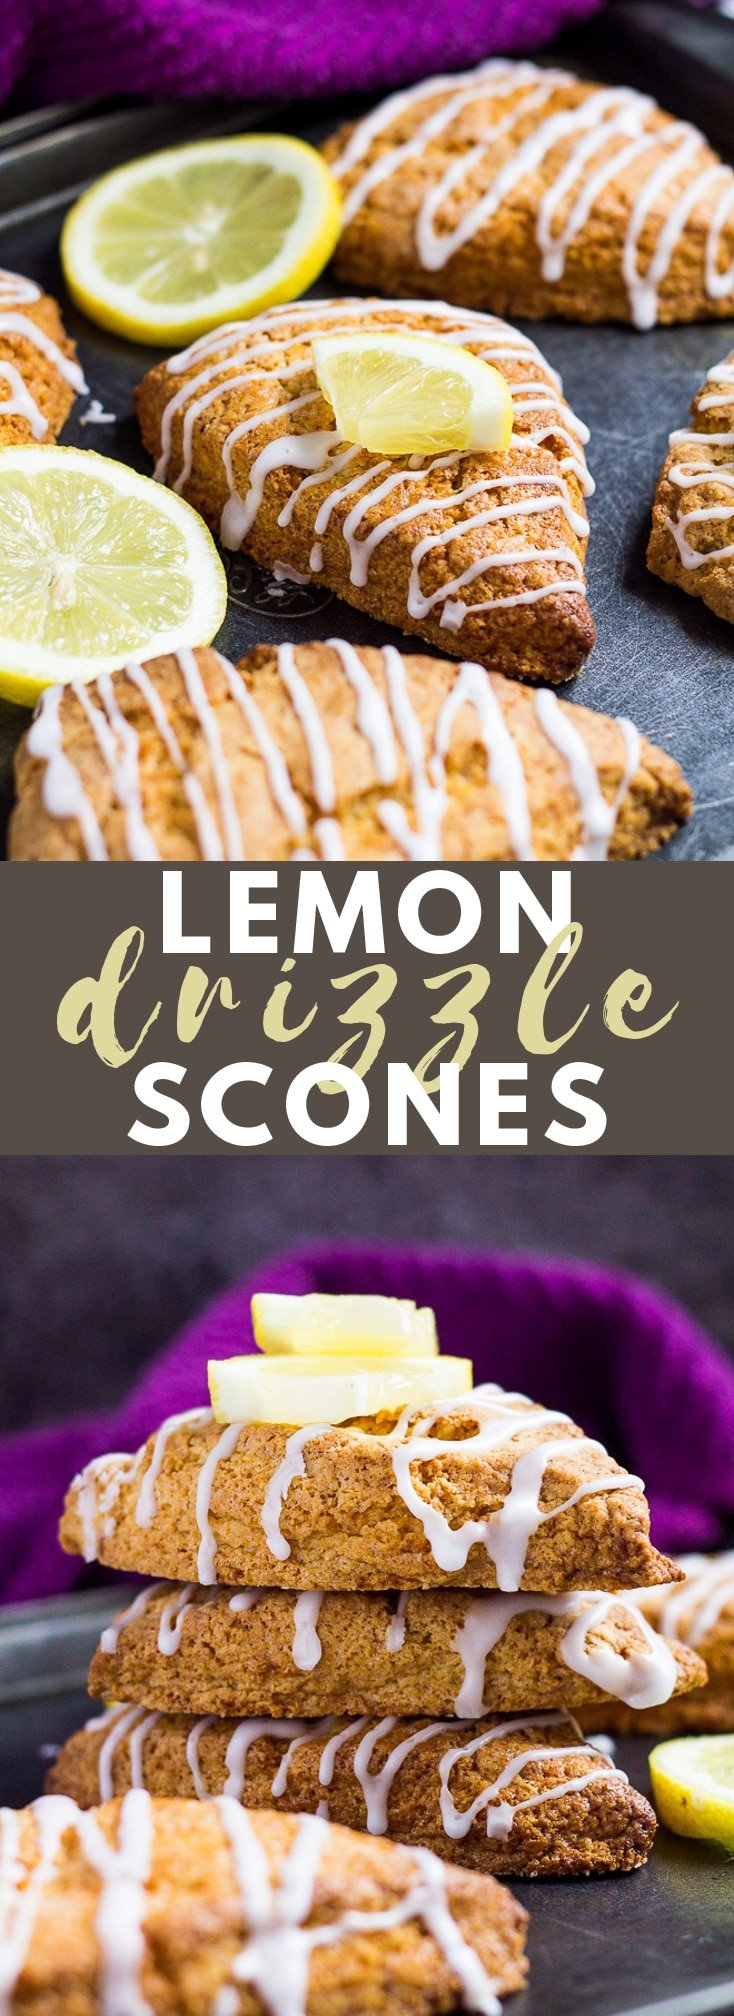 Lemon Drizzle Scones – These scones are deliciously soft and fluffy on the inside and crispy on the outside, infused with lemon and drizzled with a sweet lemon glaze!